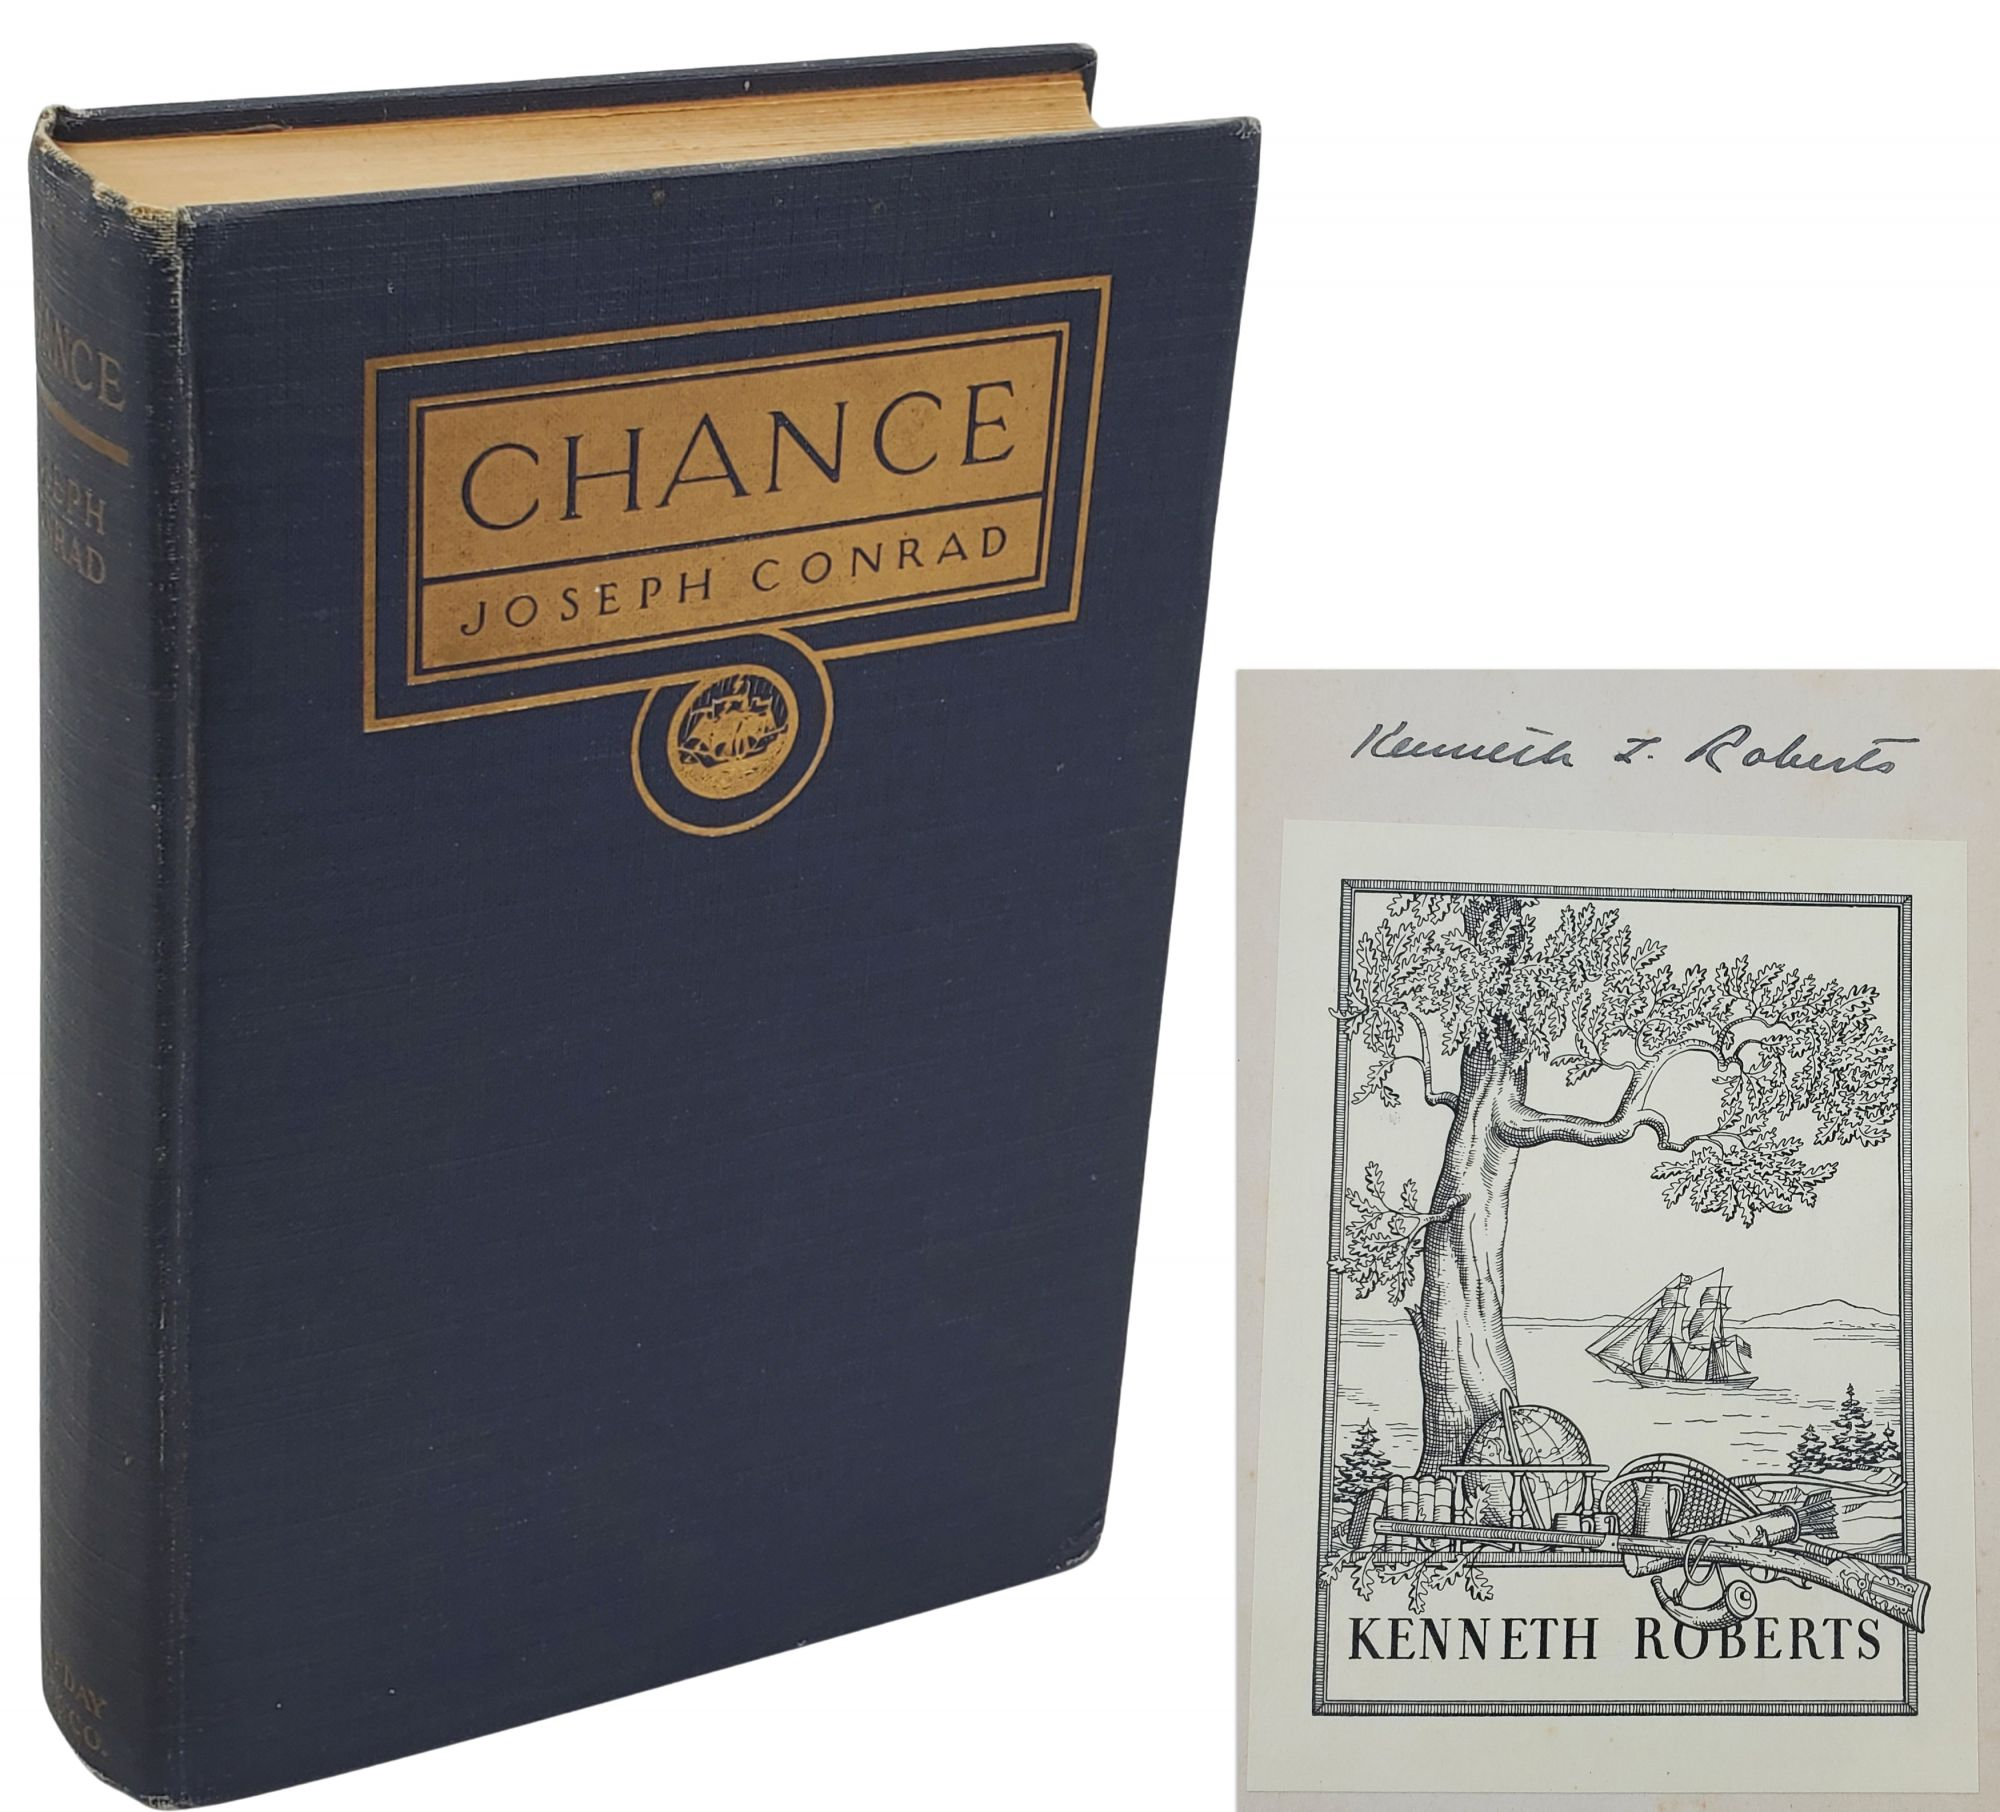 CHANCE: A TALE IN TWO PARTS - THIS COPY OWNED BY KENNETH ROBERTS. Joseph Conrad.